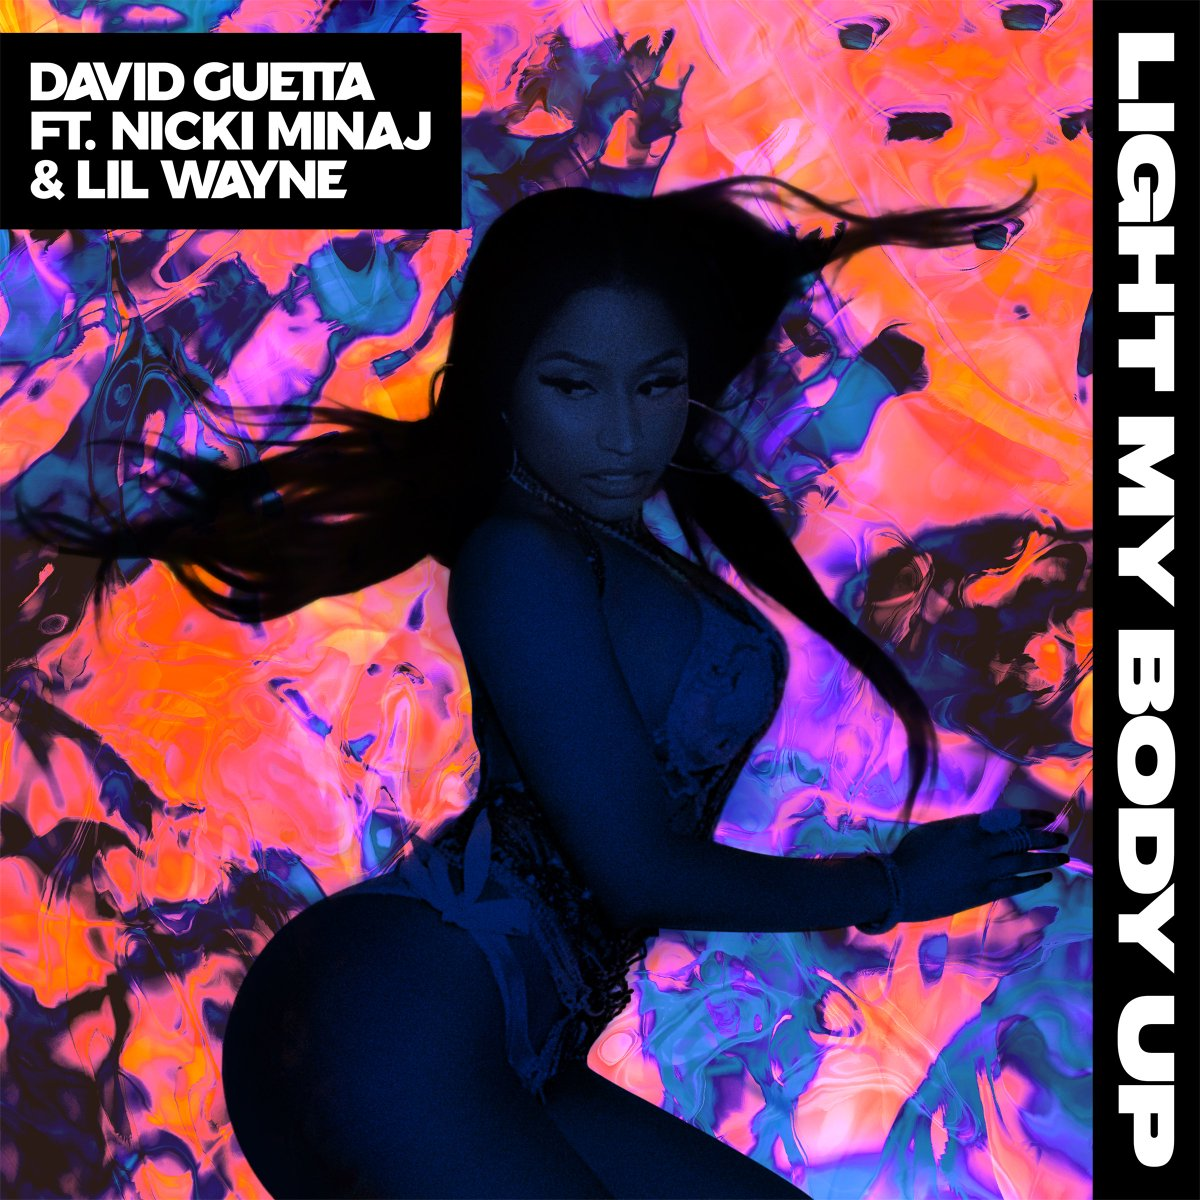 NEW @DavidGuetta feat. @NICKIMINAJ and @LilTunechi #LightMyBodyUp 🔥 ht...